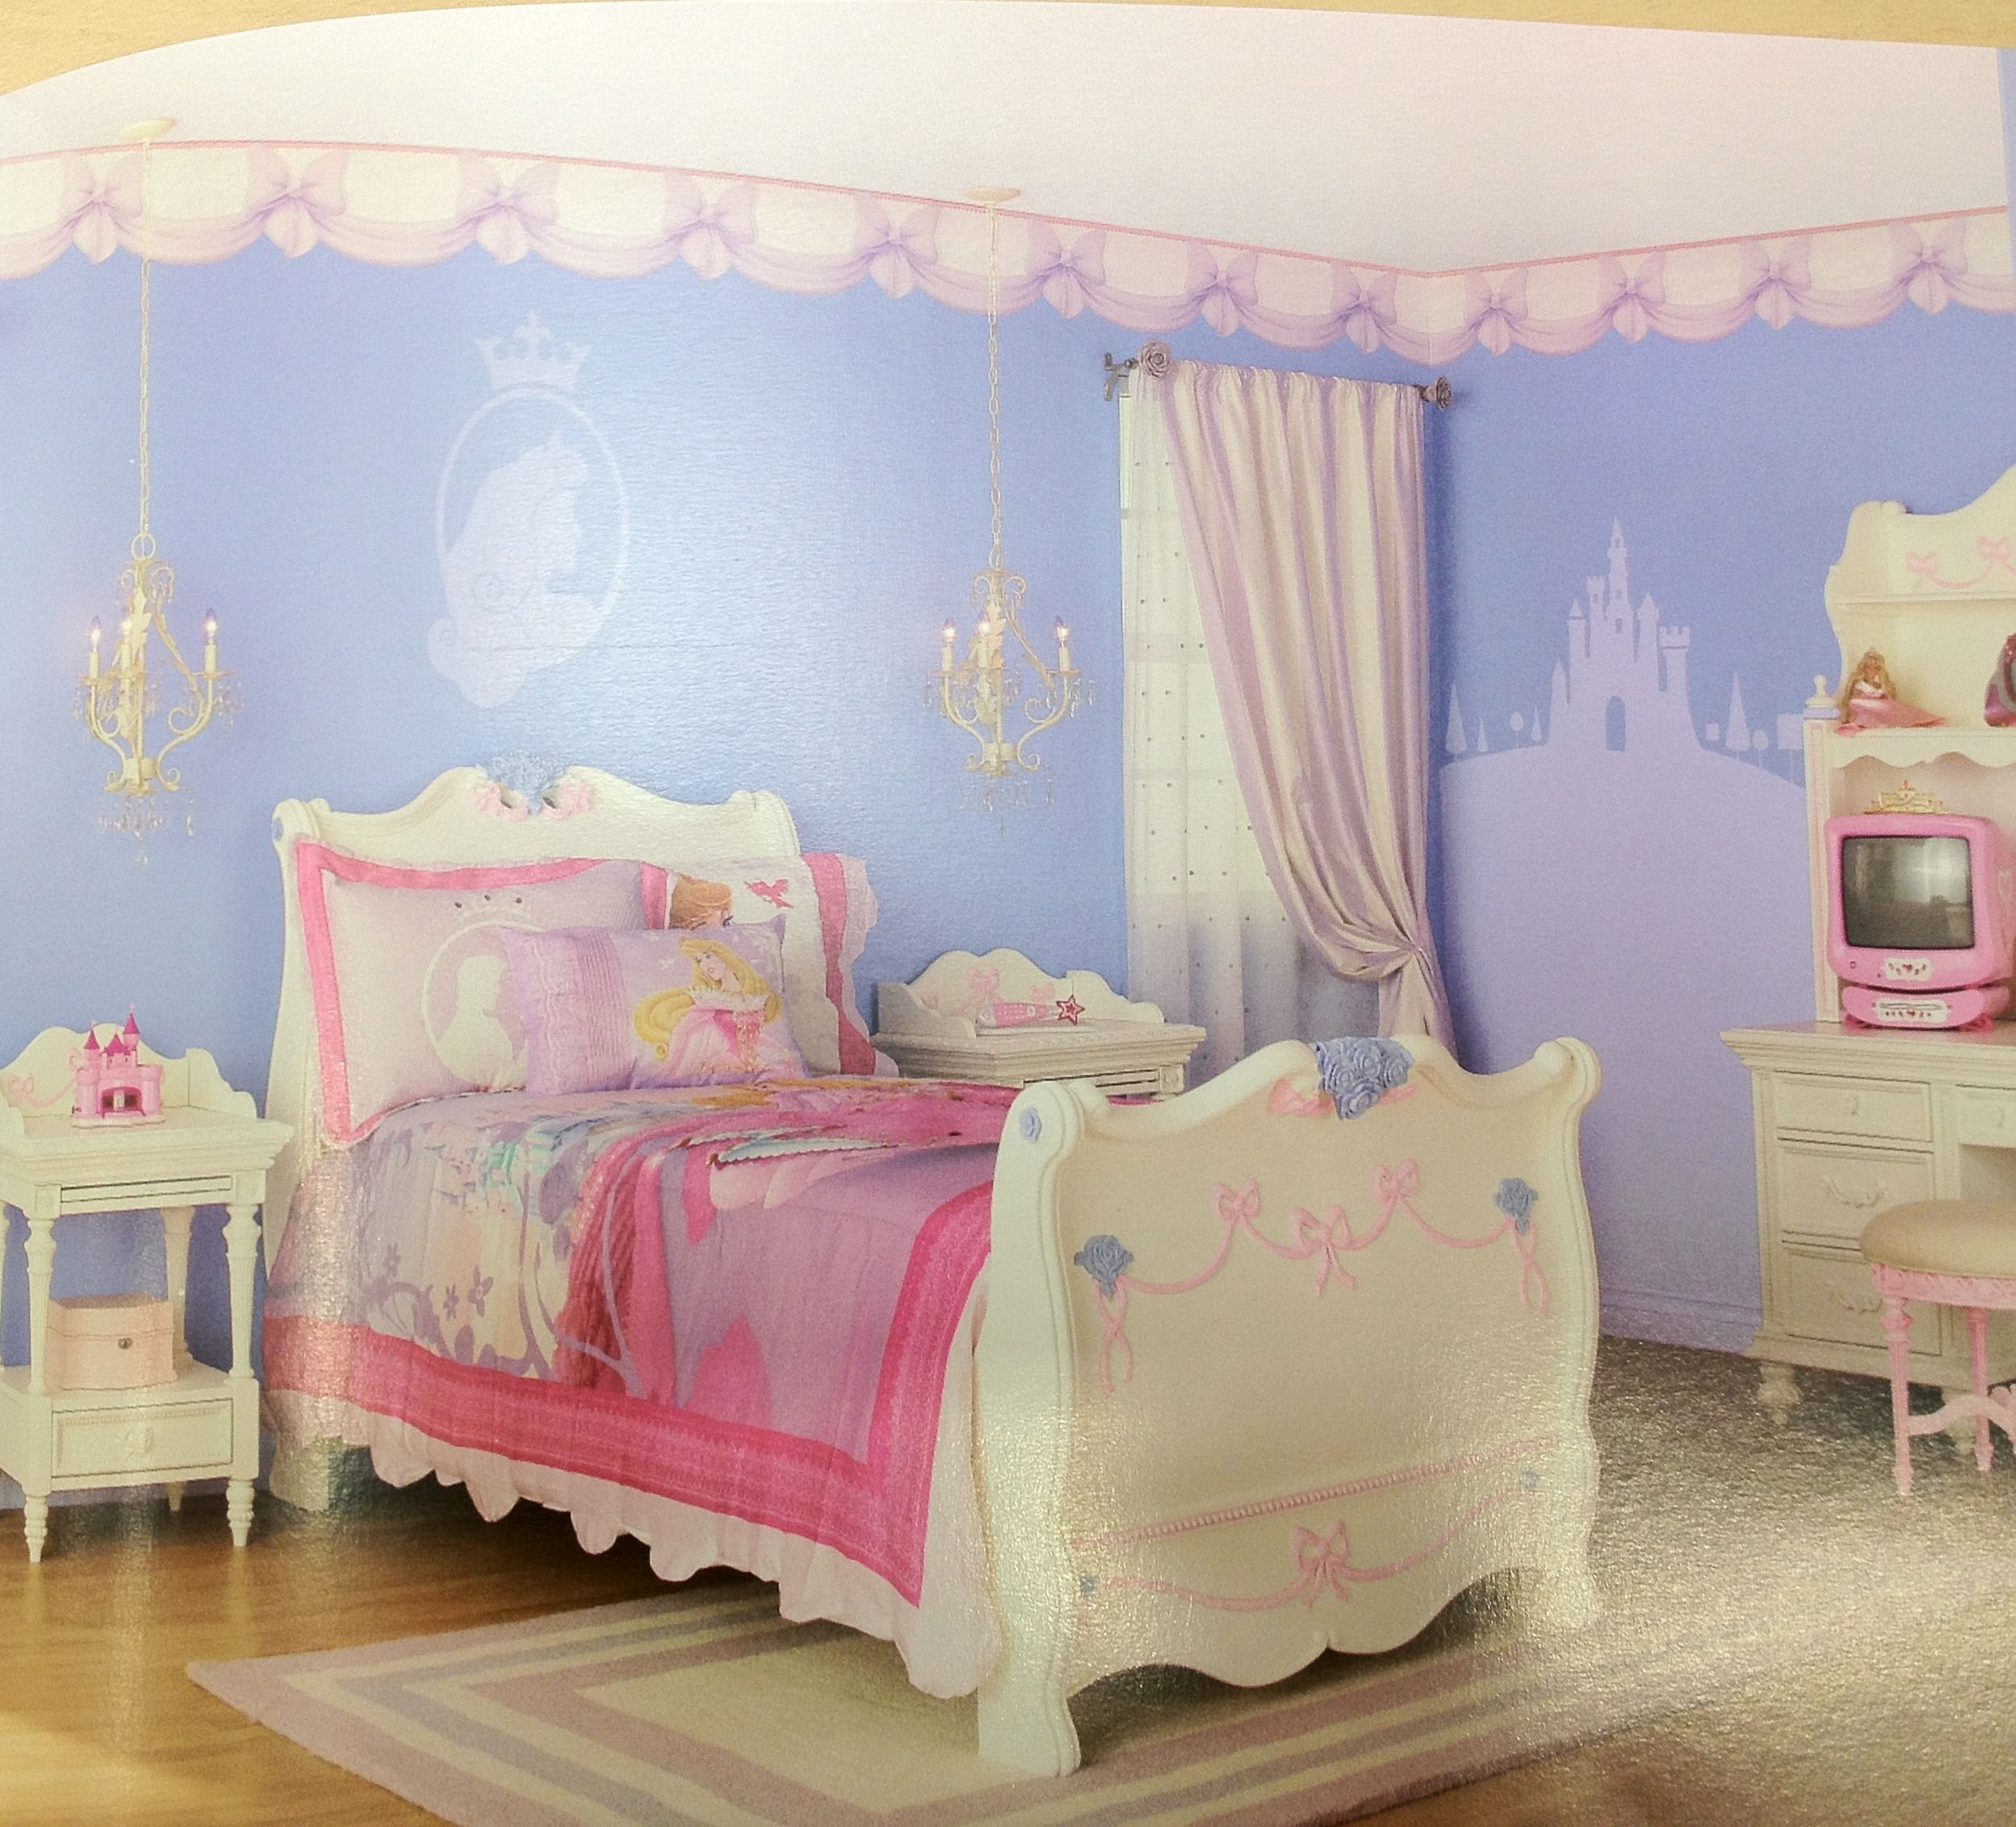 32 Dreamy Bedroom Designs For Your Little Princess: Lifestyle Branding And The Disney Princess Megabrand